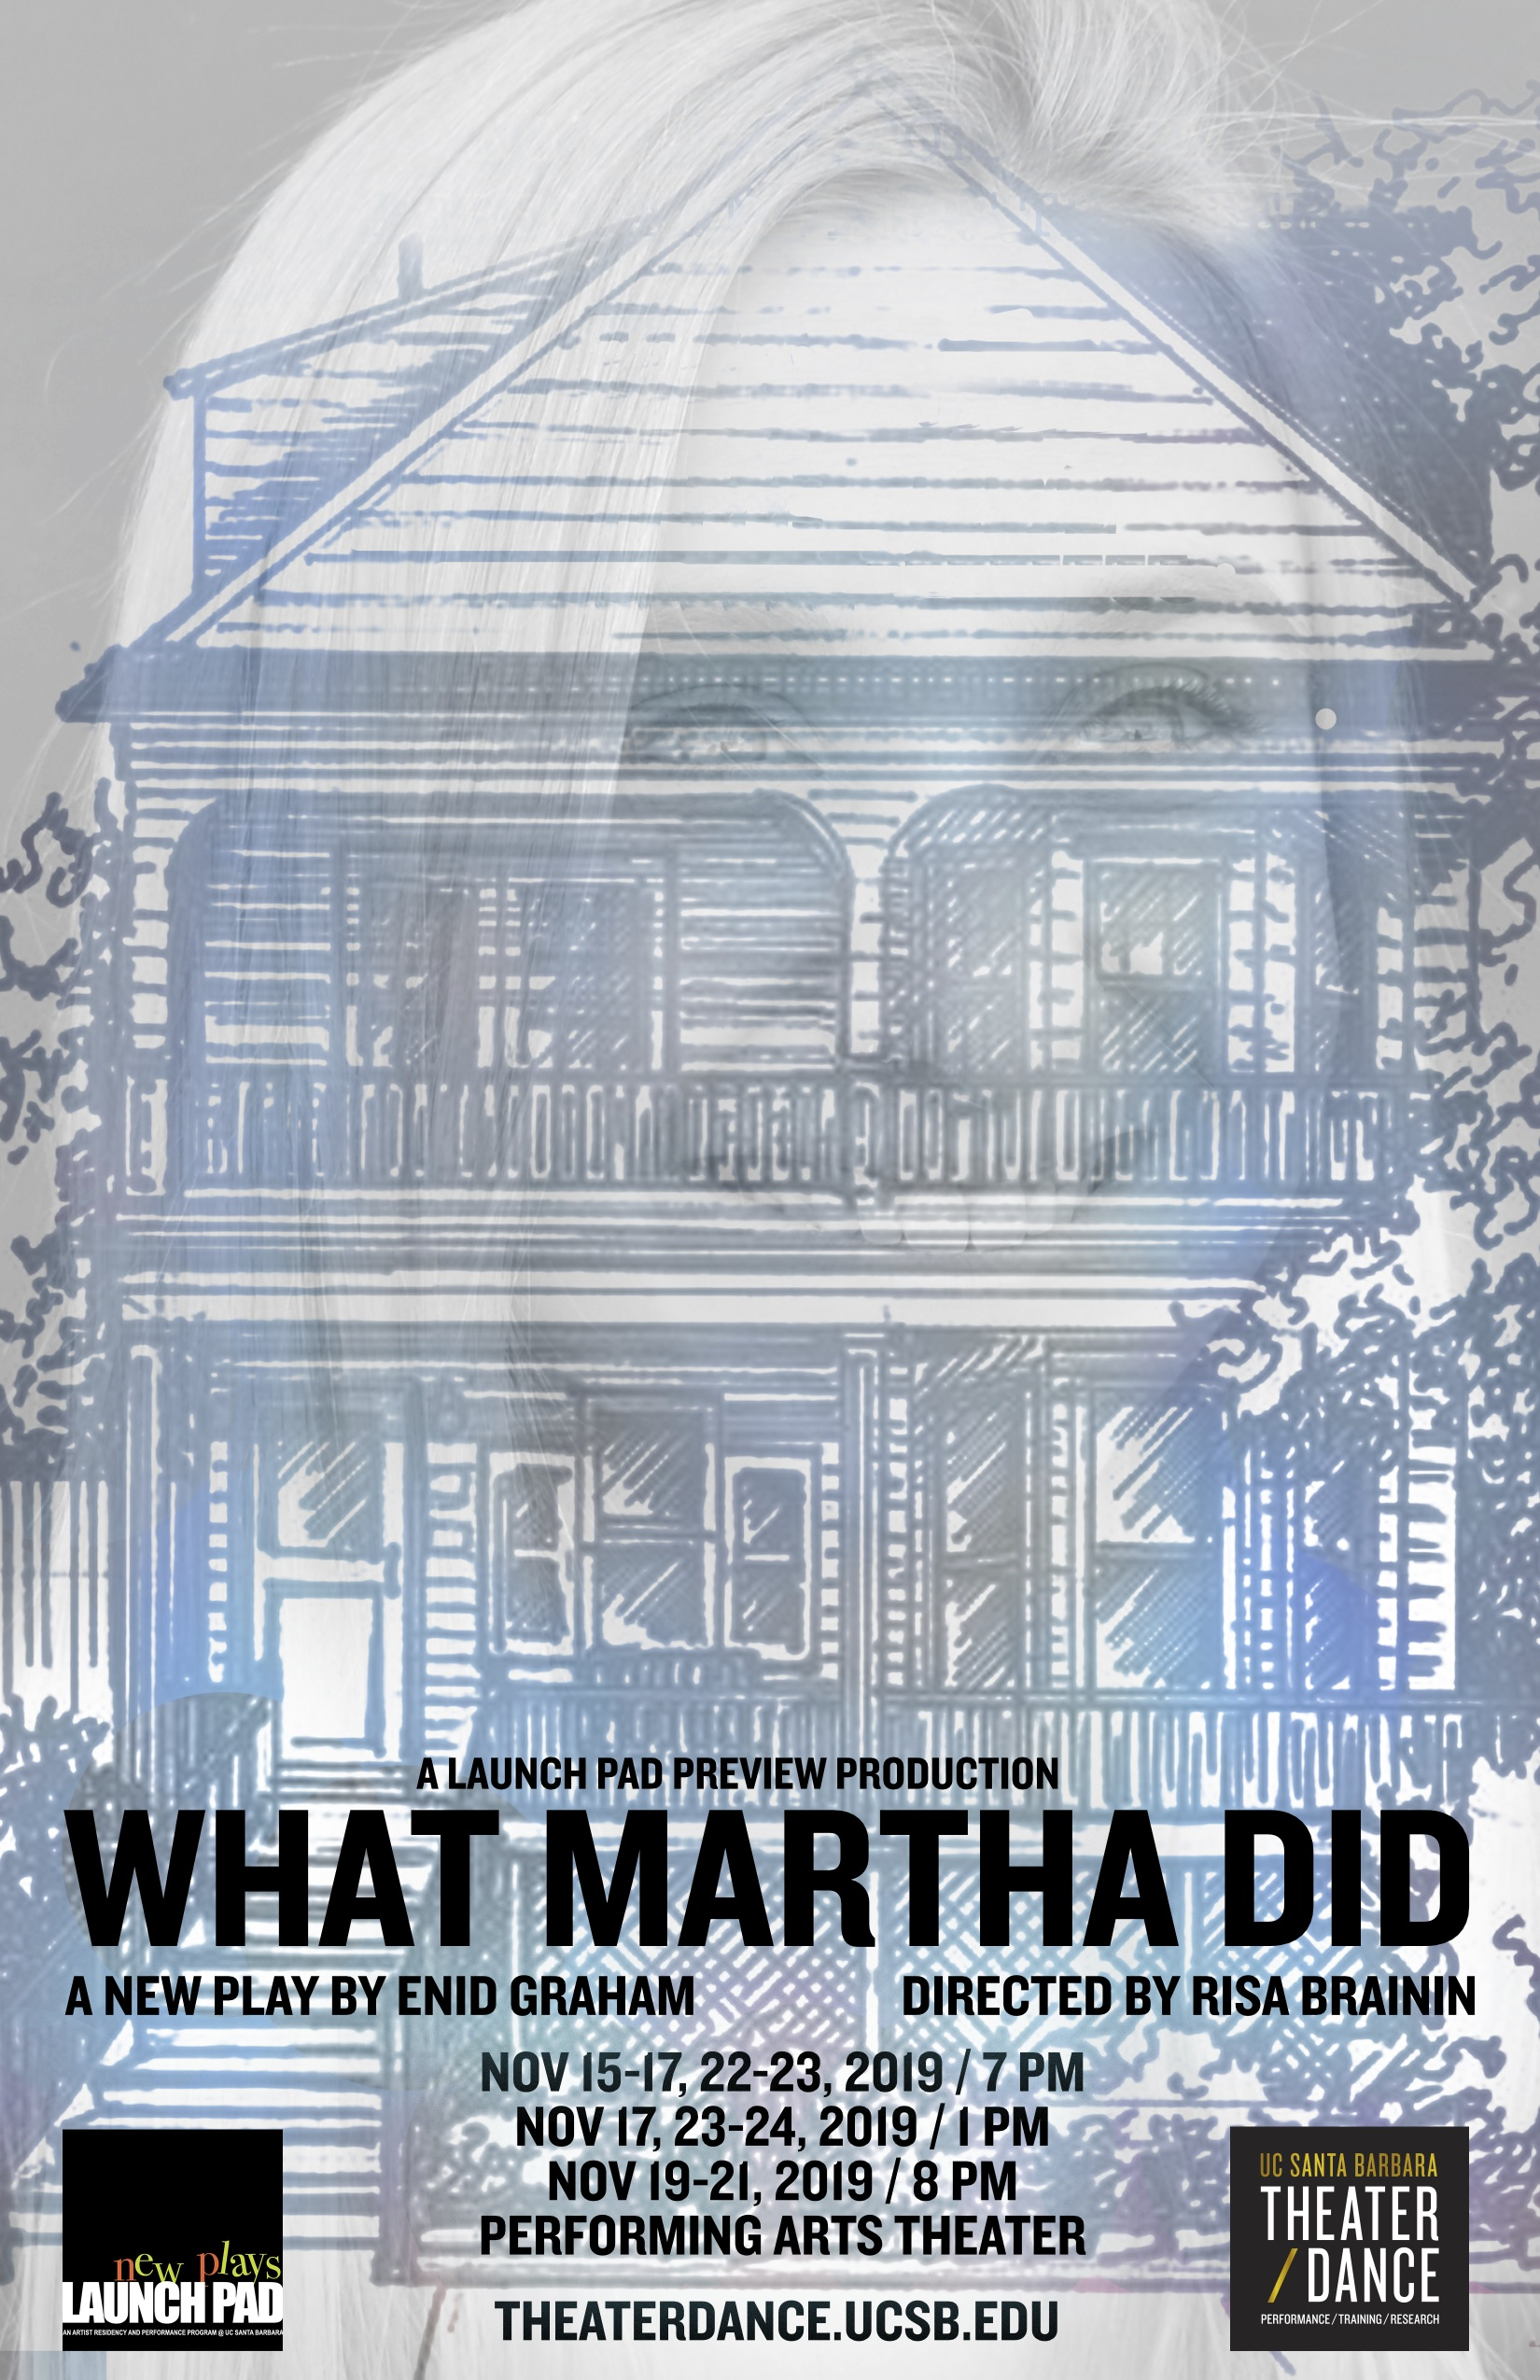 poster for Enid Graham's play What Martha Did; a house with a girl's face superimposed